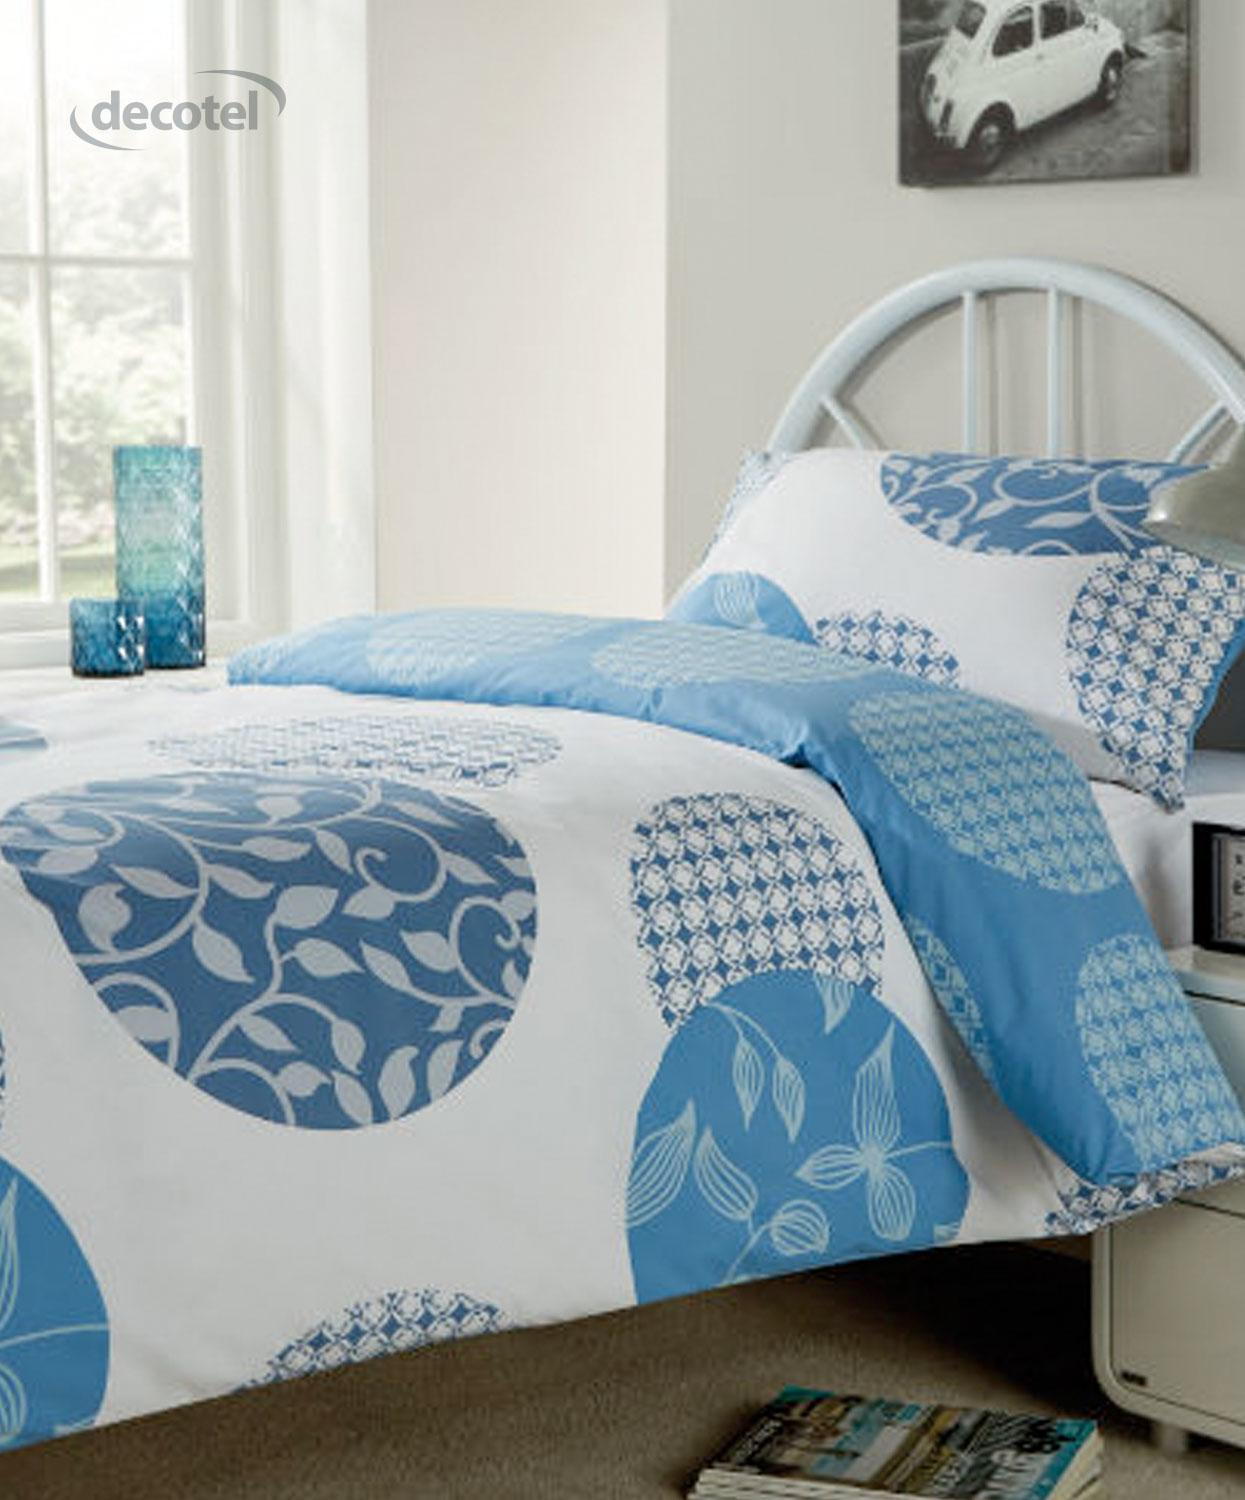 Woodland pillow cases in blue